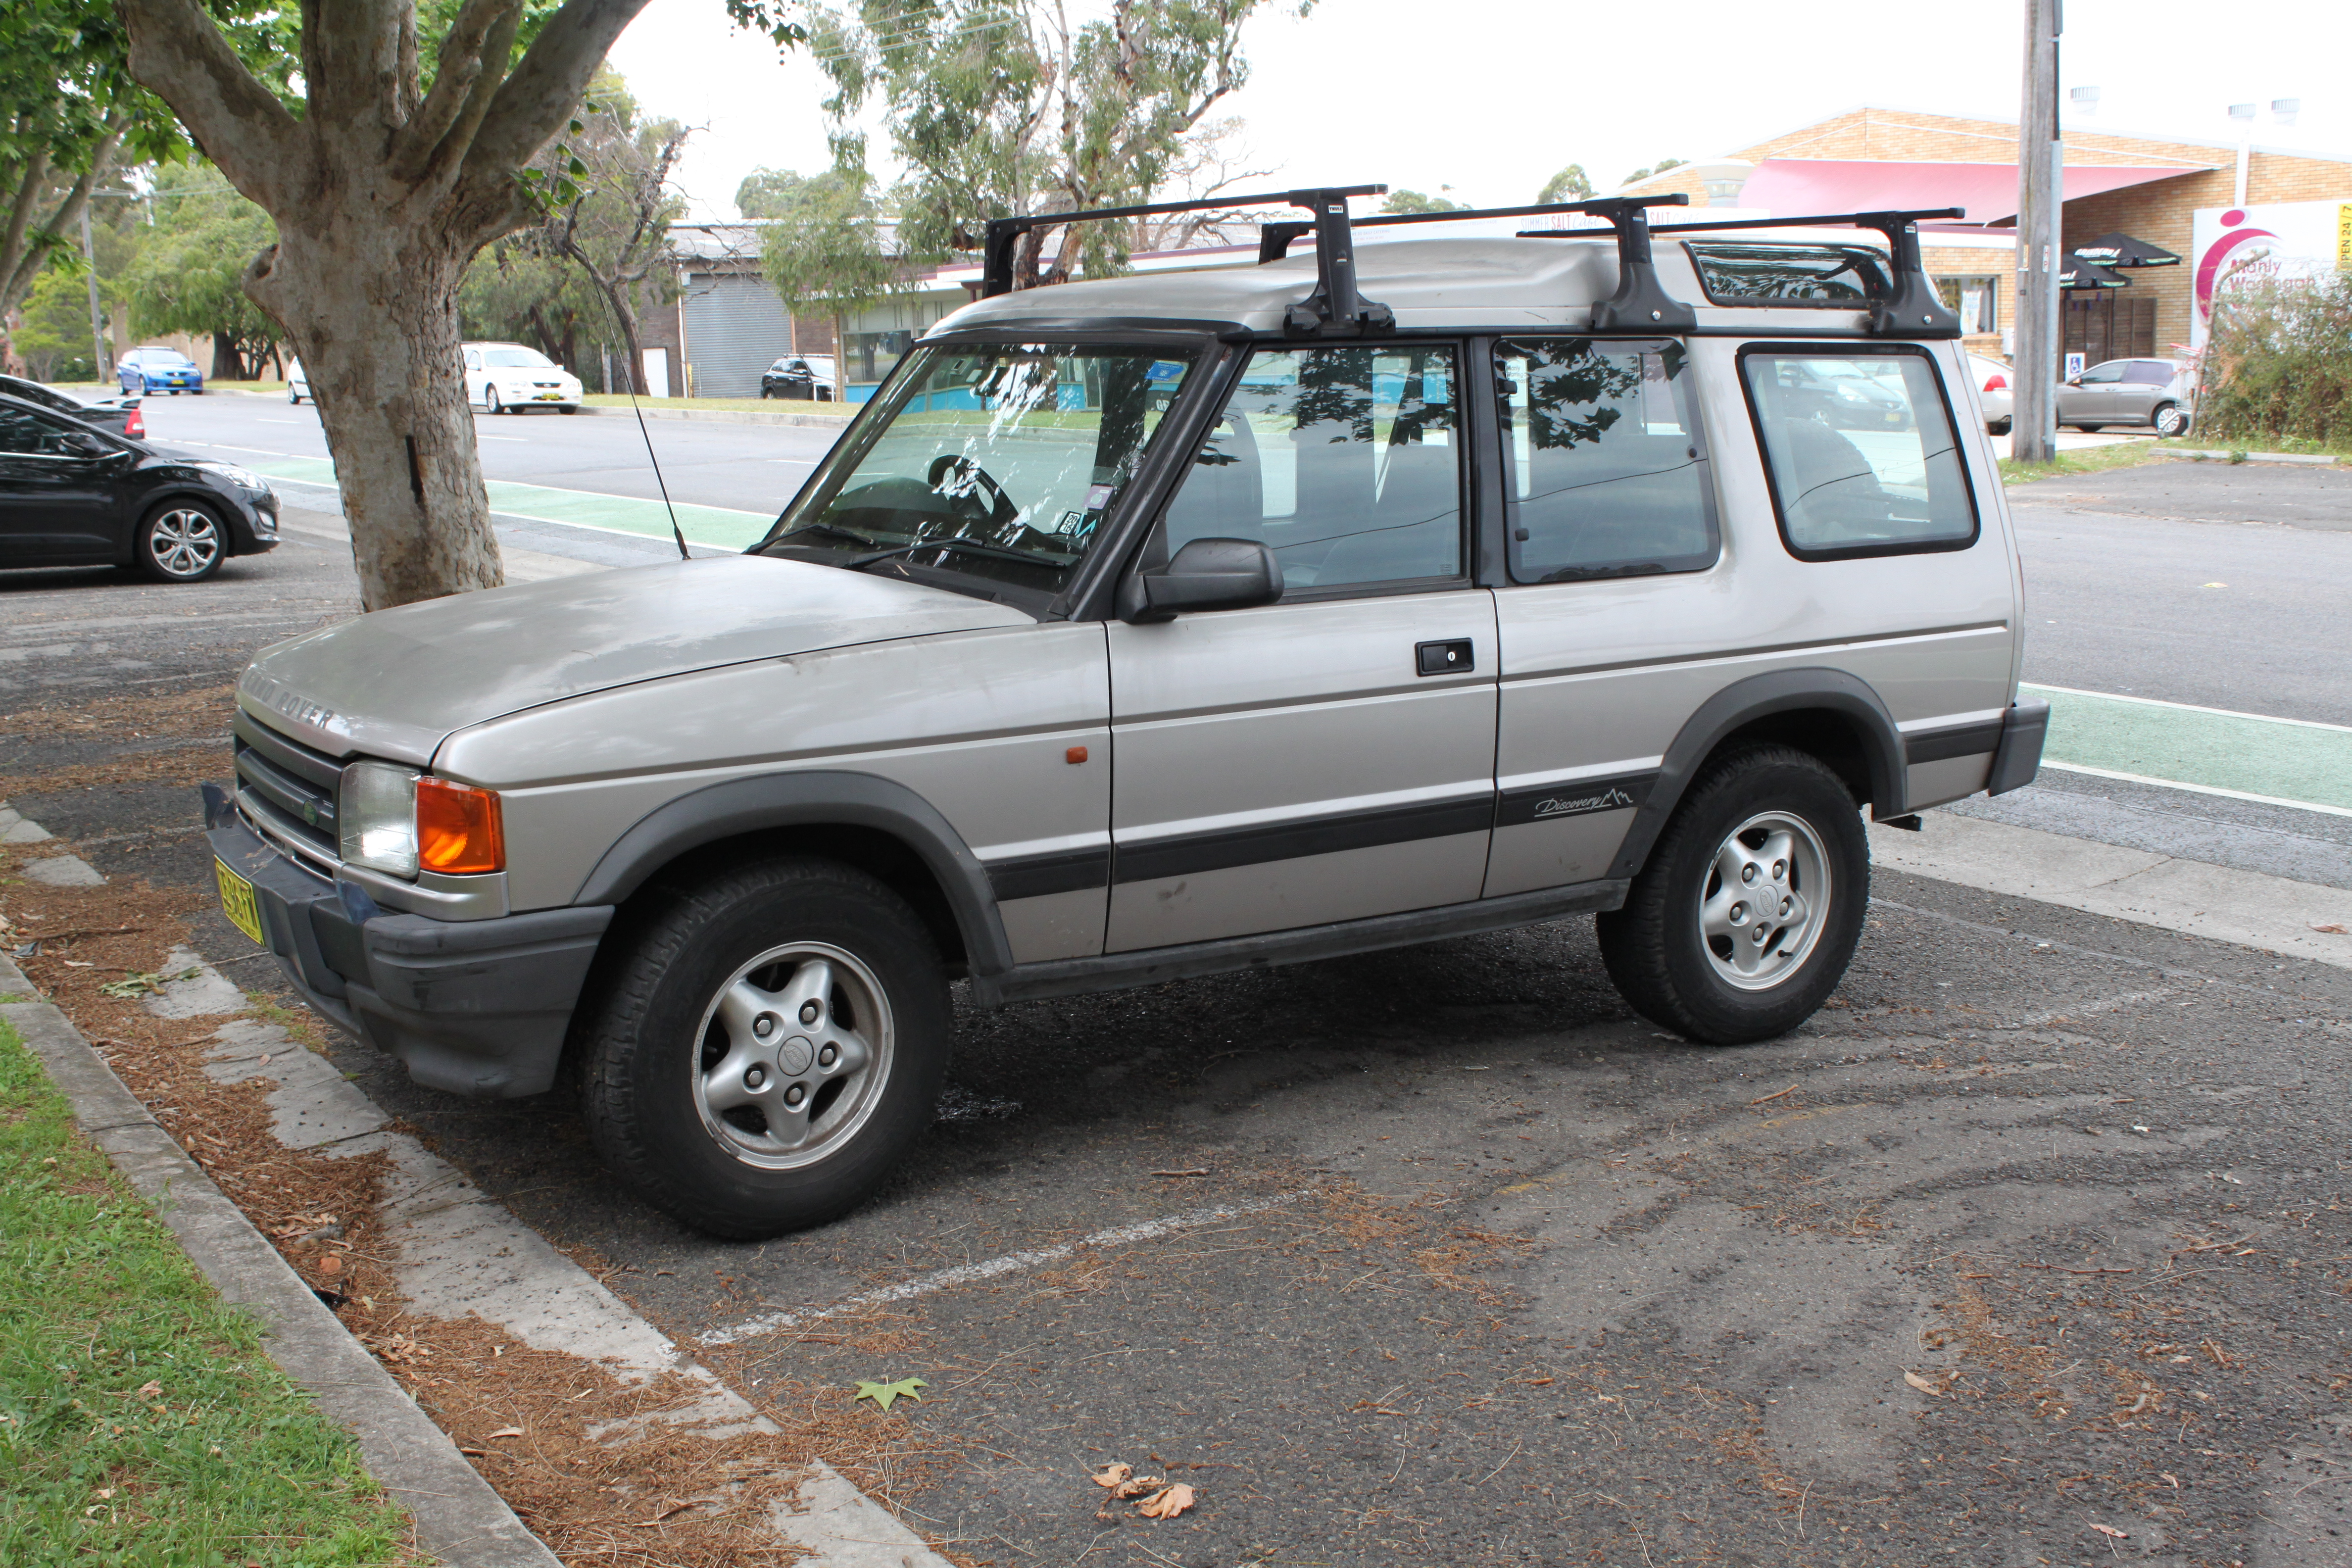 File1994 Land Rover Discovery 3-door wagon (23045379742).jpg & File:1994 Land Rover Discovery 3-door wagon (23045379742).jpg ...